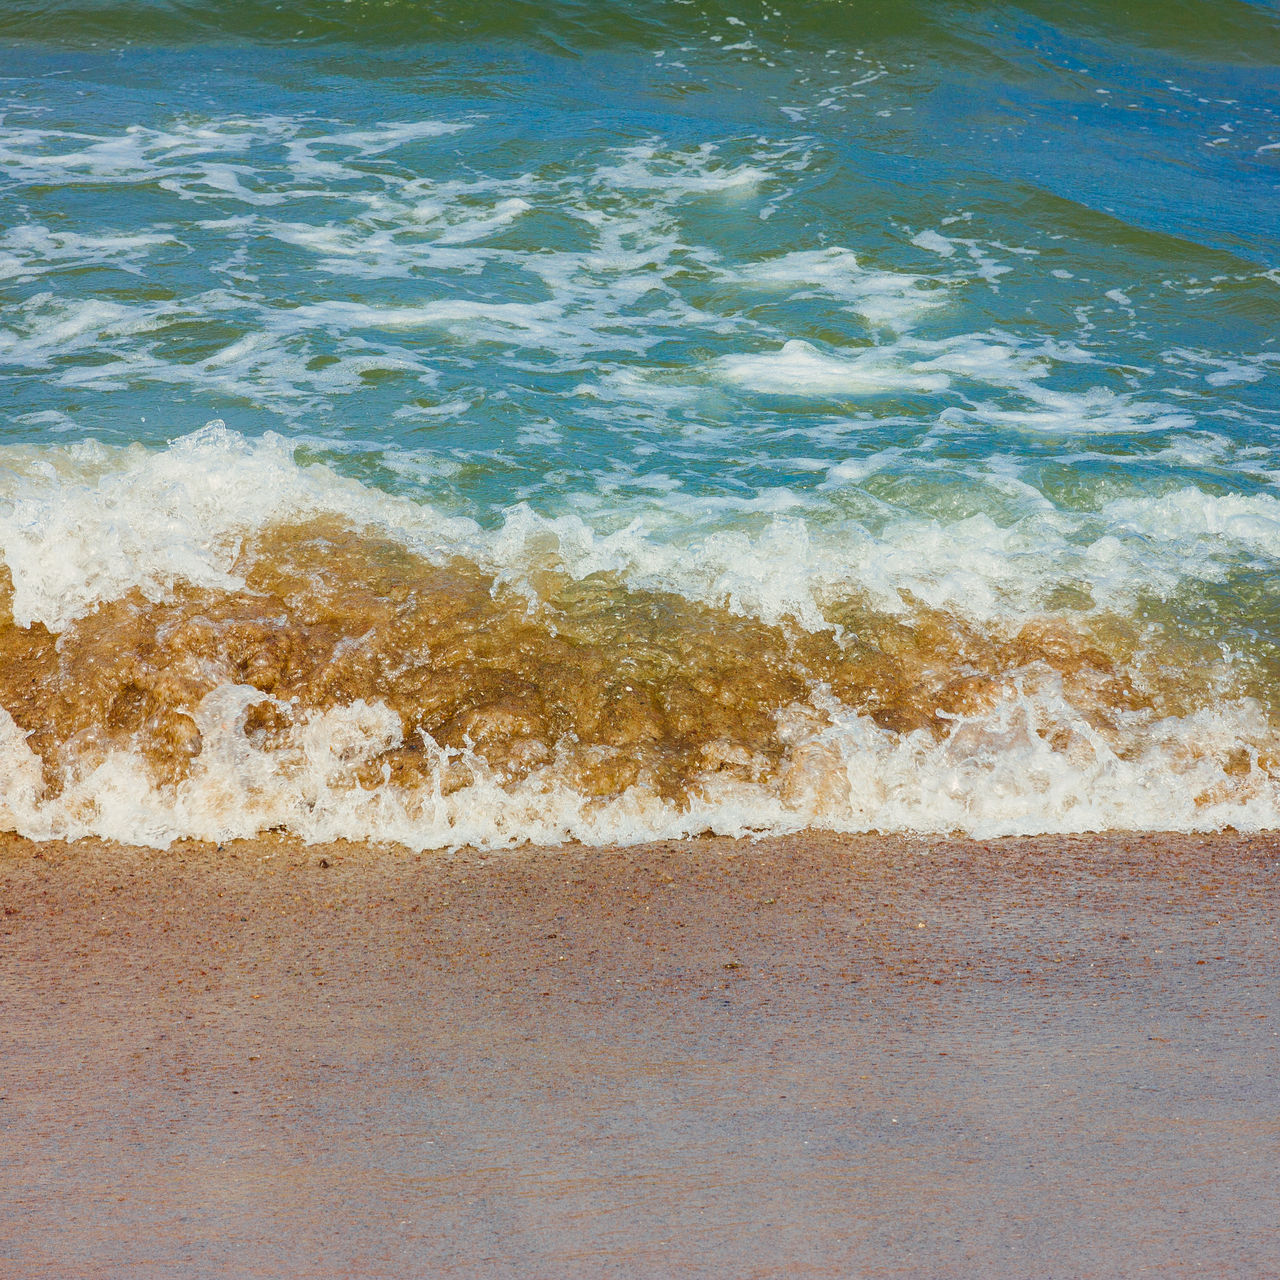 beach, wave, sand, sea, water, nature, beauty in nature, no people, day, outdoors